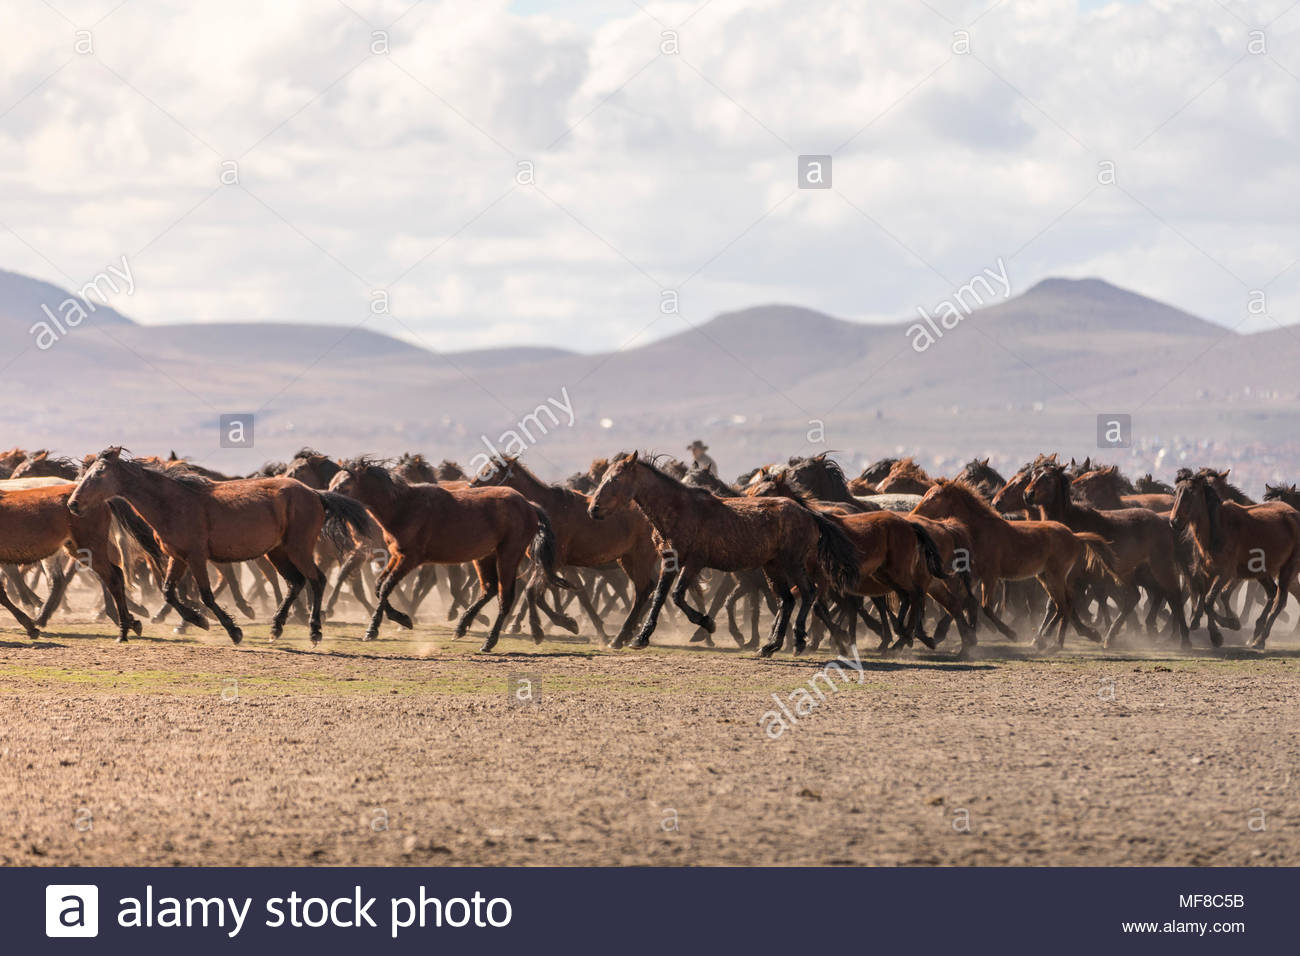 Wild Yılkı Horses In Nature Stock Photo